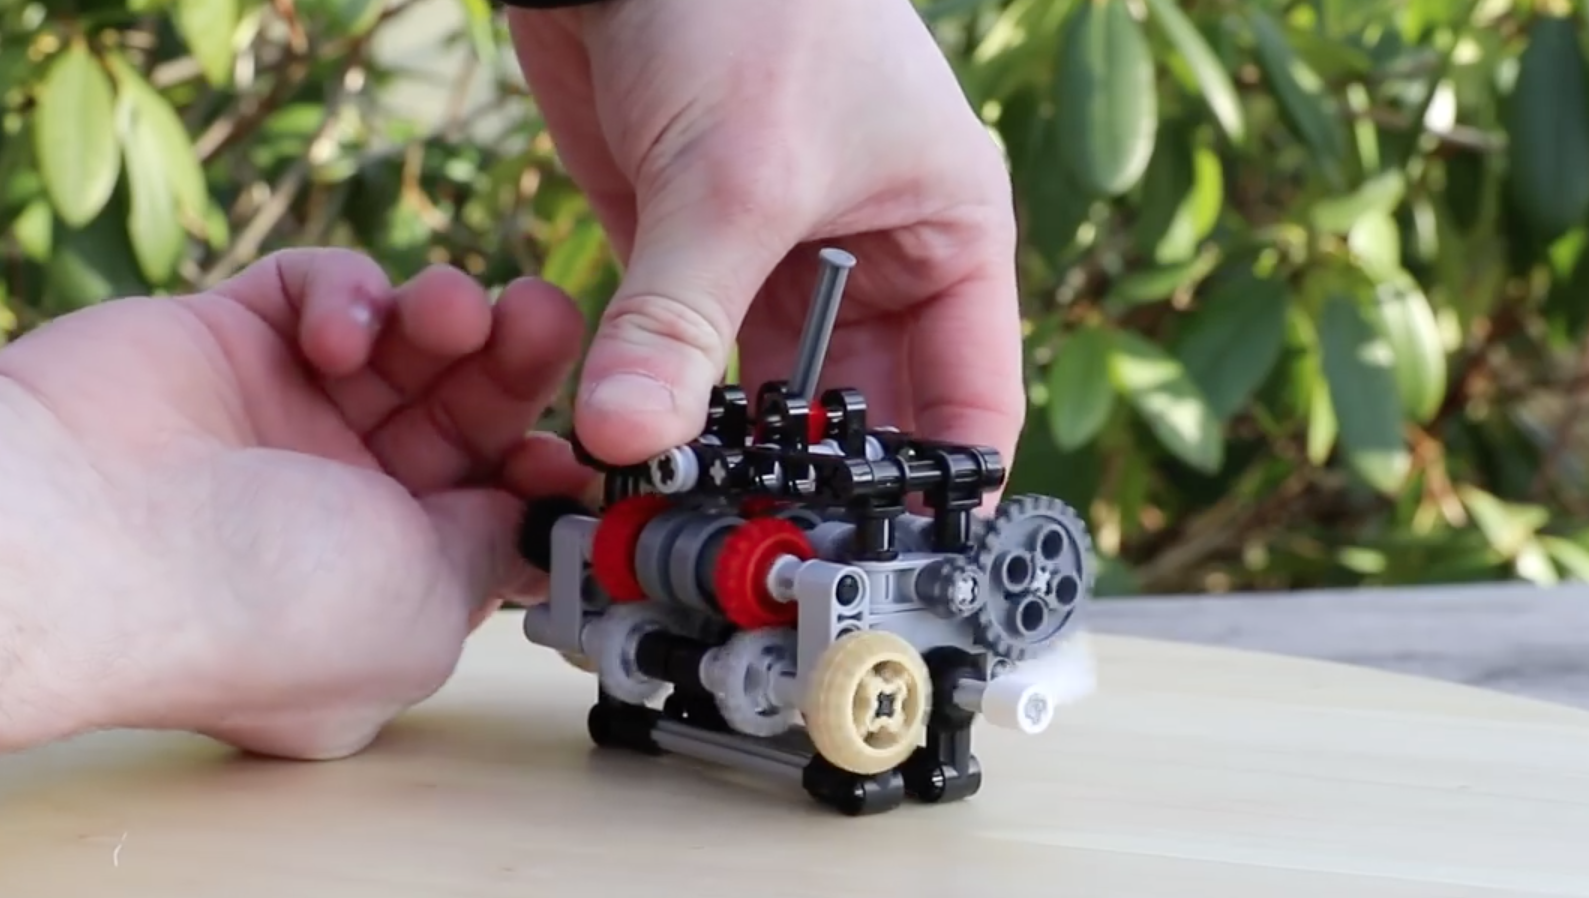 This unbelievable Lego project is actually a working six-speed gearbox!